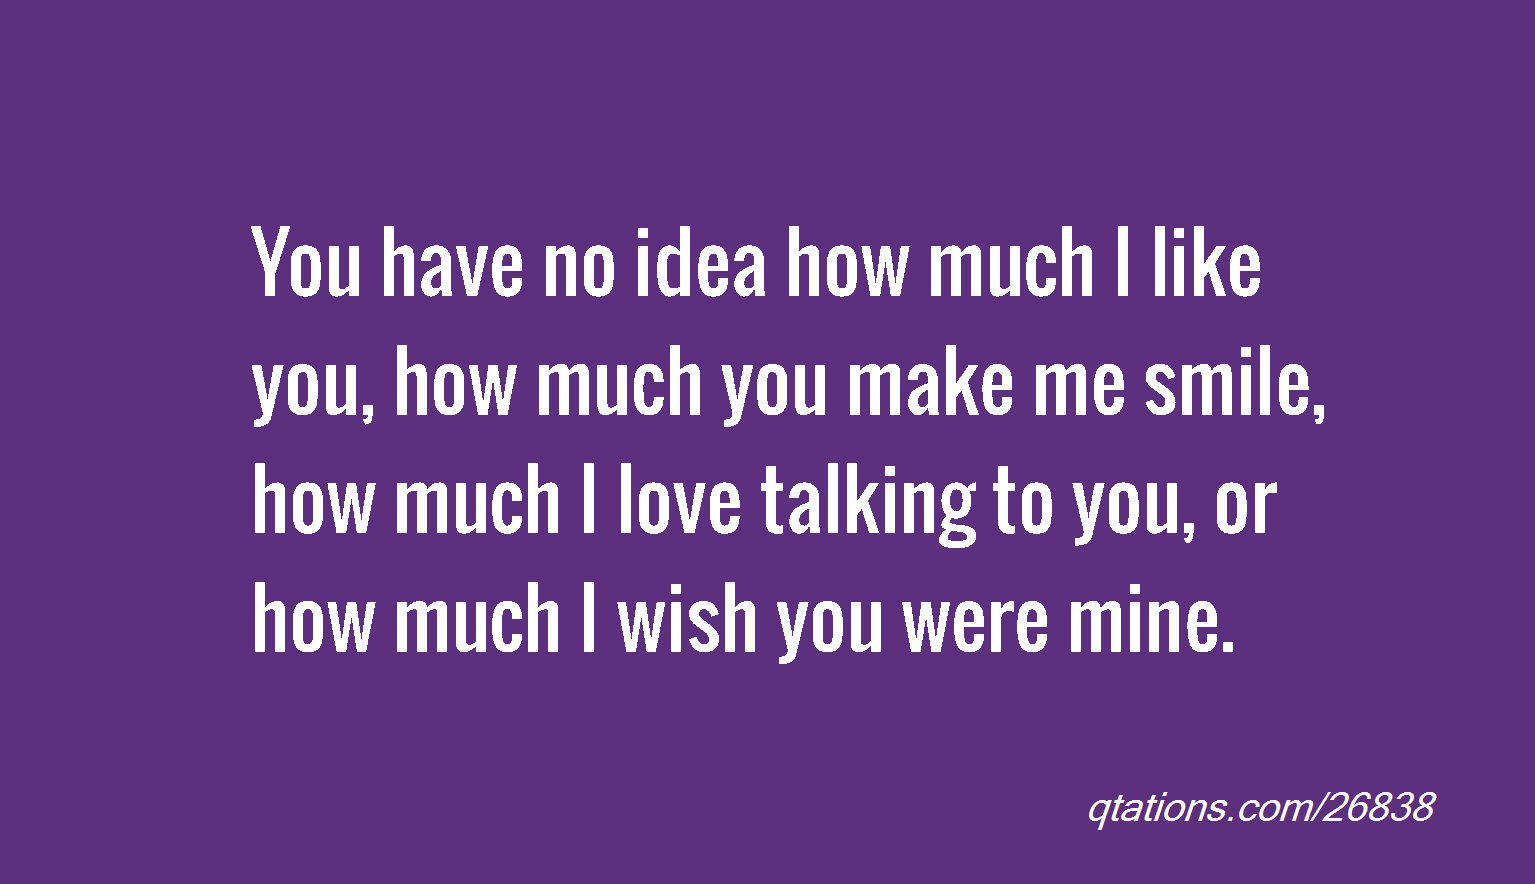 You Have No Idea How Much I Love You Quotes. QuotesGram